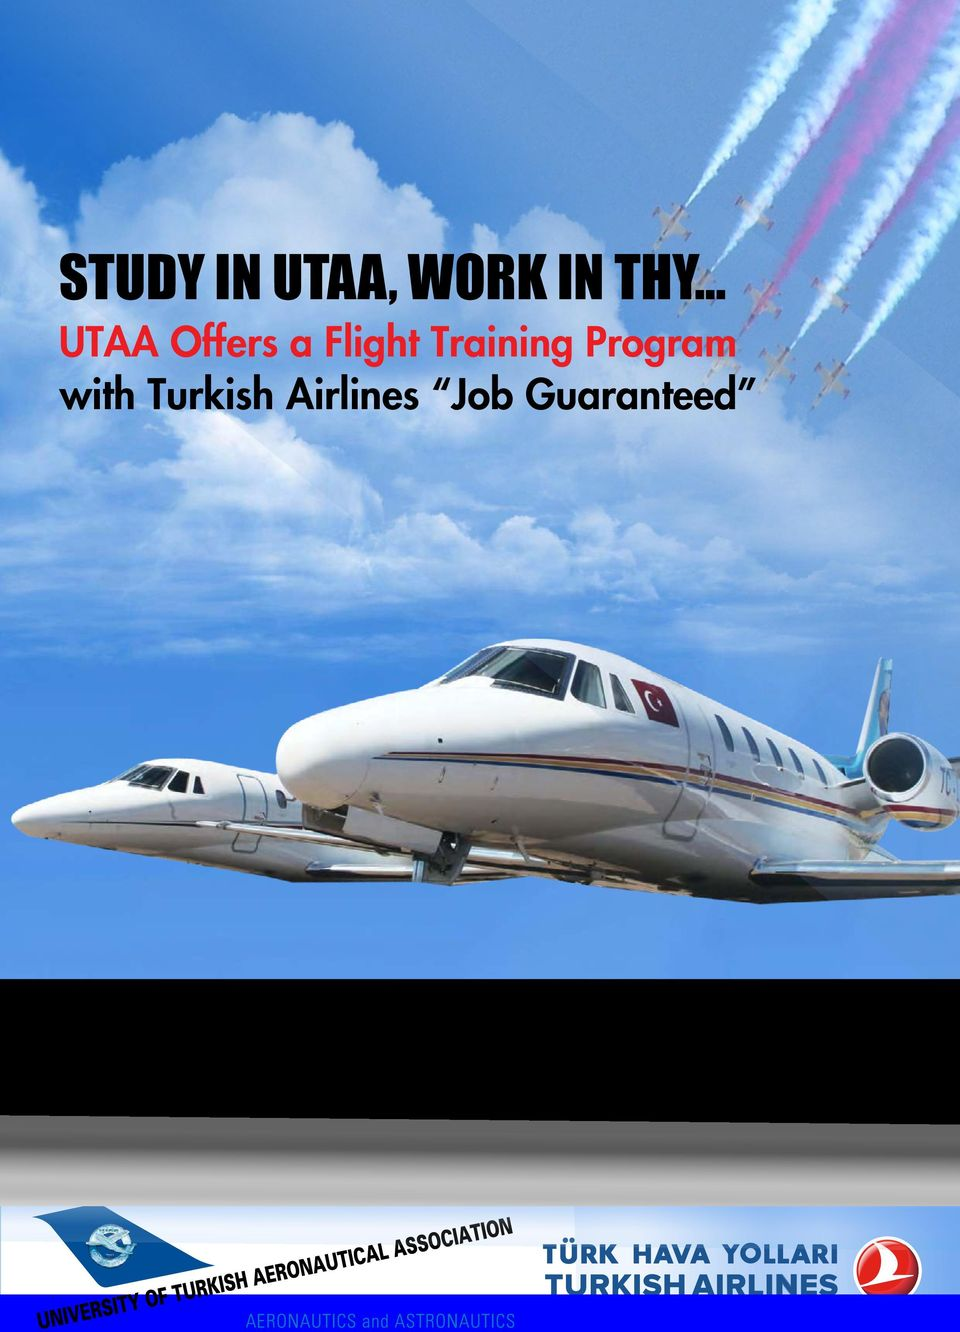 Training Program with Turkish Airlines